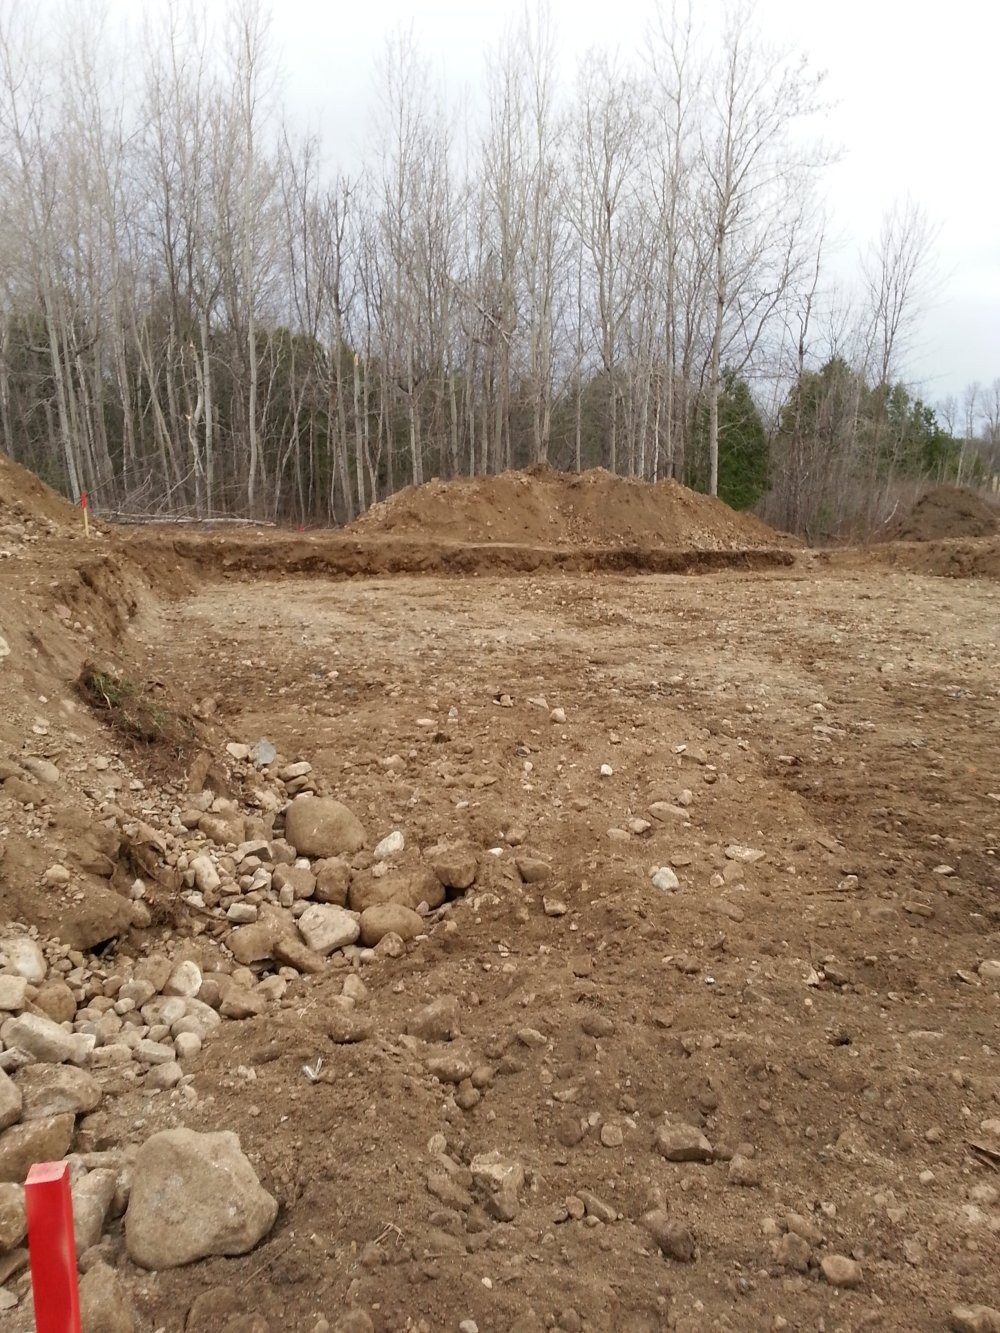 Excavating for an owner builder raised bungalow. How to form and pour footings